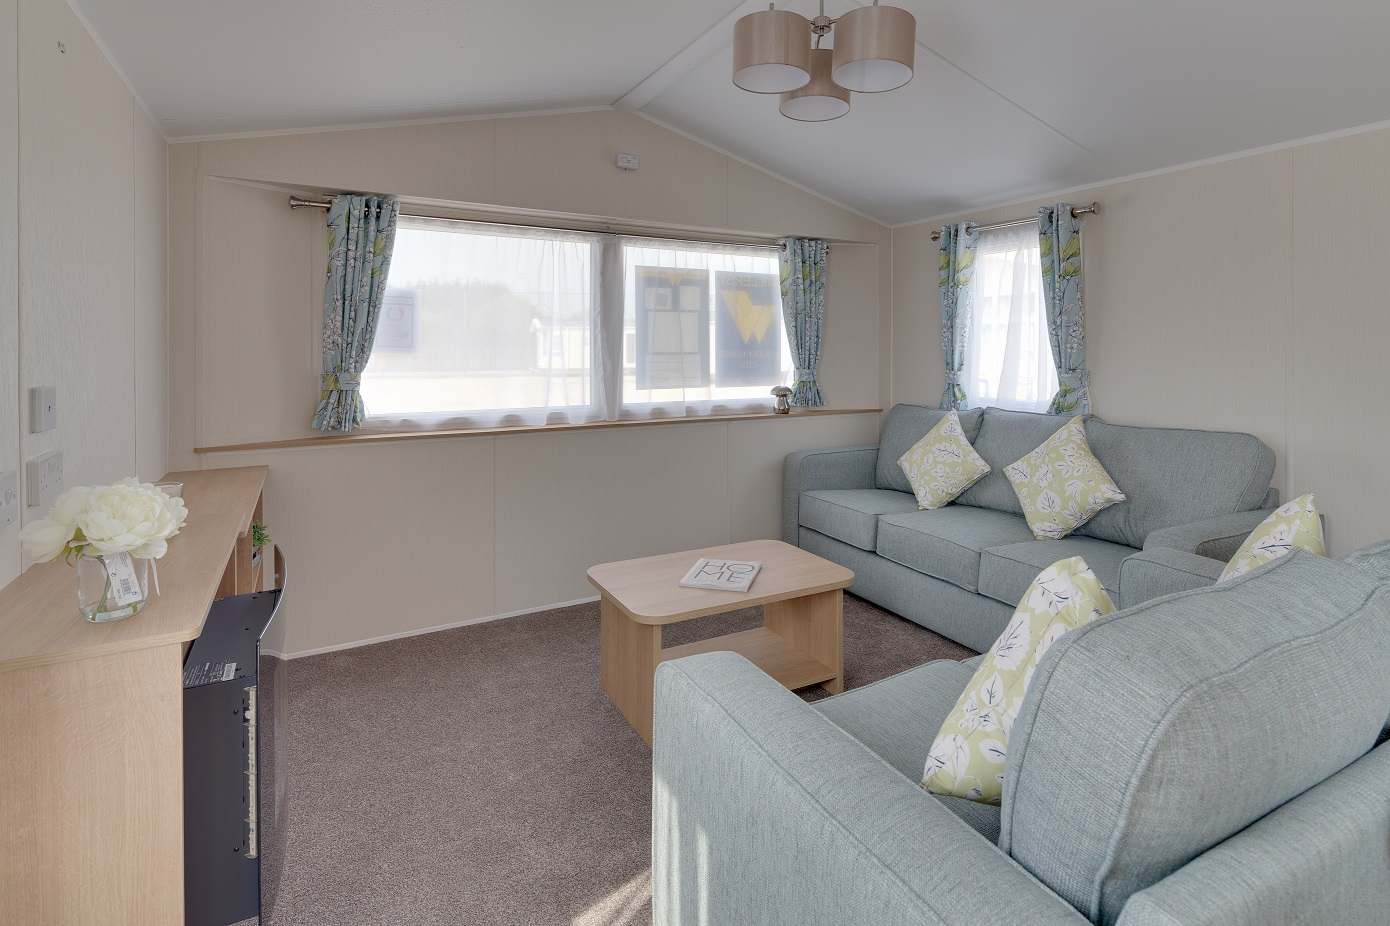 Willerby Ideal Mistral Plus+: Static Caravans and Holiday Homes for Sale on Caravan Parks, Bamburgh, Northumberland Large Image 1